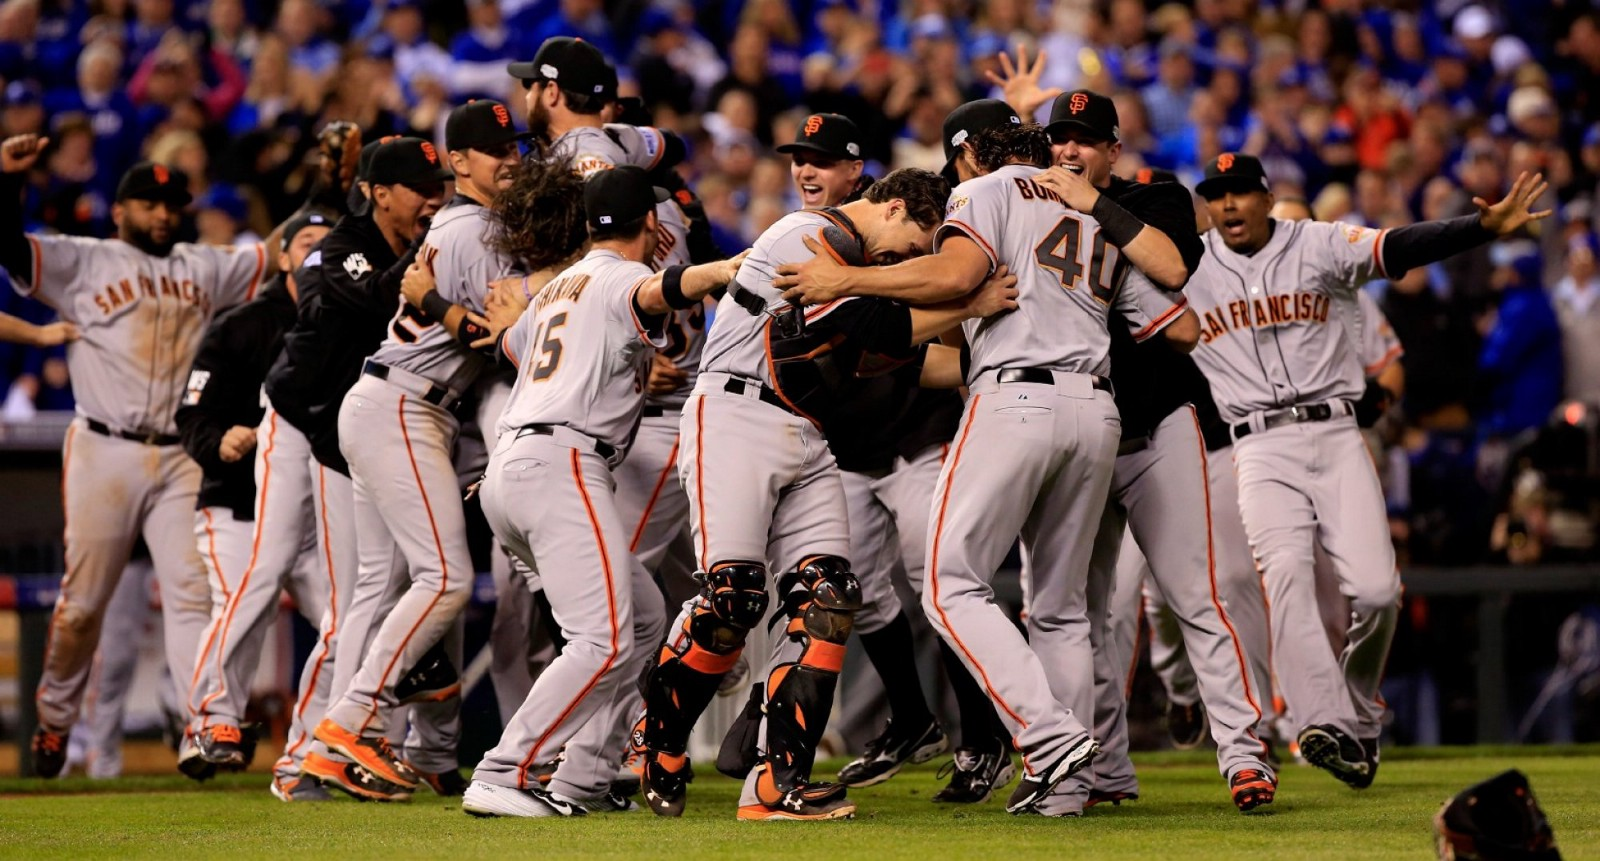 bac30897205a8 The Giants celebrate a World Series Championship. (Getty Images Jamie  Squire). The San Francisco ...